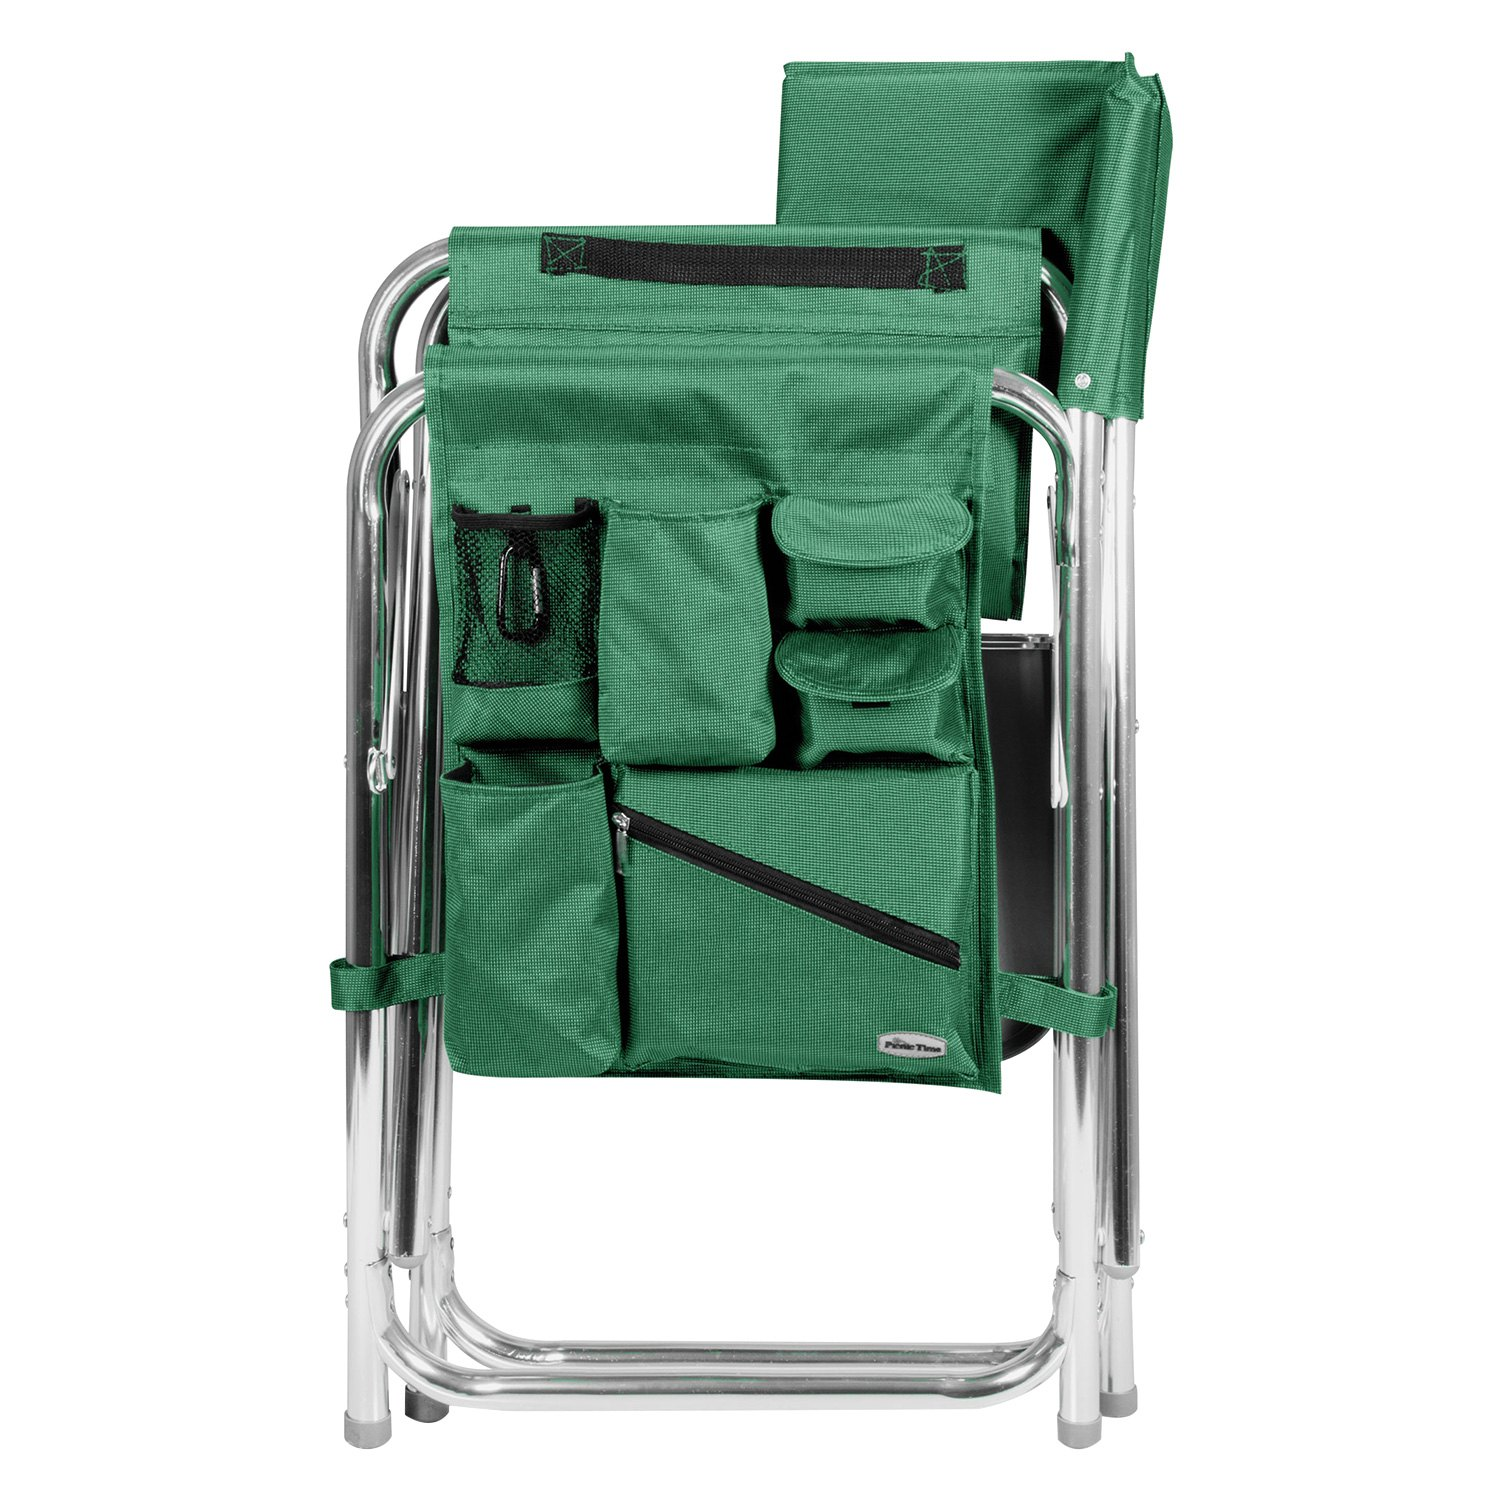 picnic time chair parts rocking chairs walmart 809 00 121 164 4 nba hunter green sports